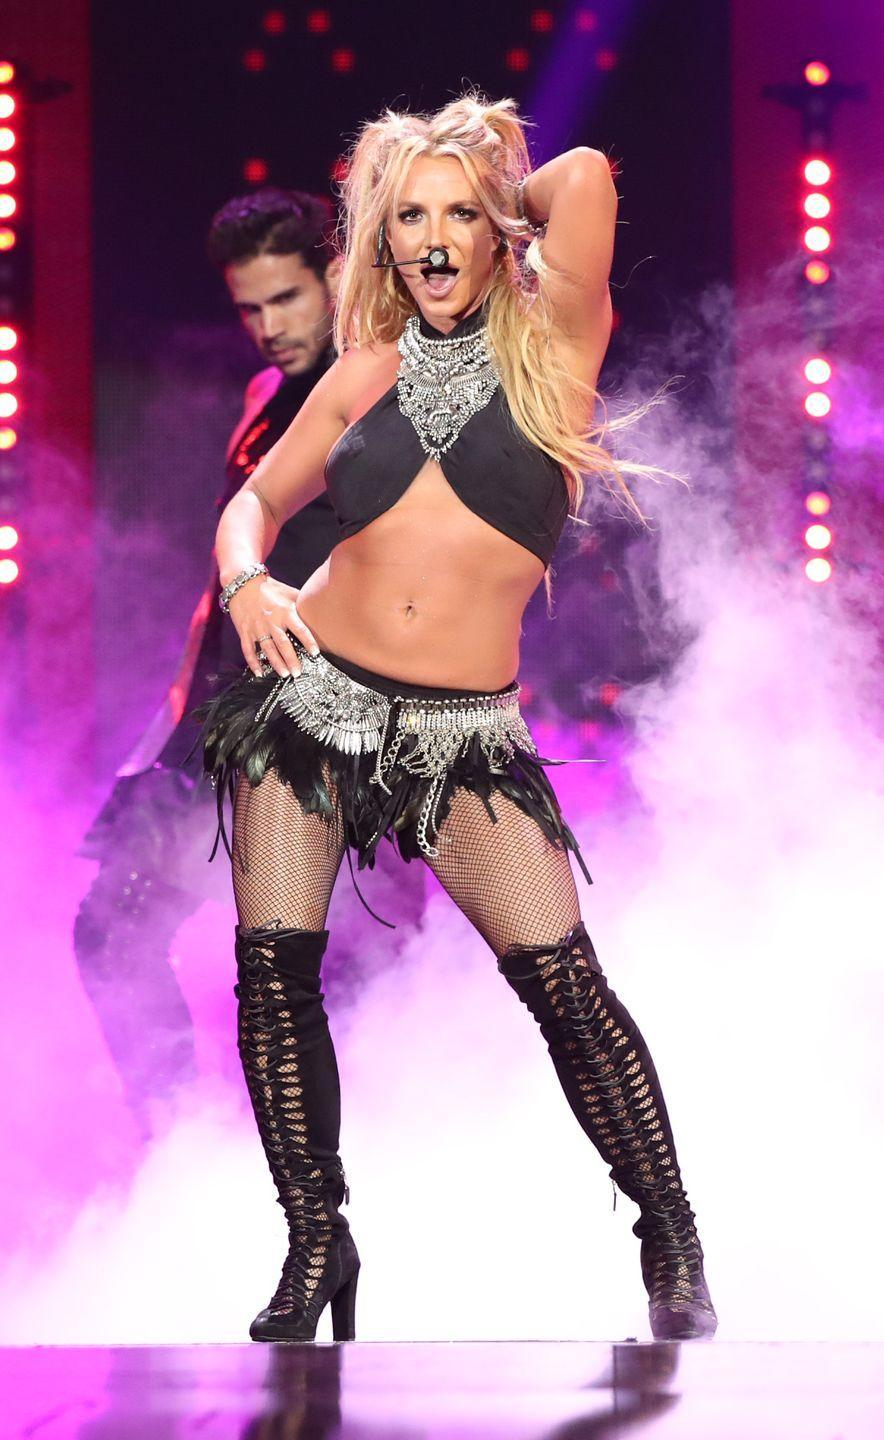 <p>Britney Spears hits the stage at the 2016 iHeartRadio Music Festival in Las Vegas on September 24, 2016.</p>